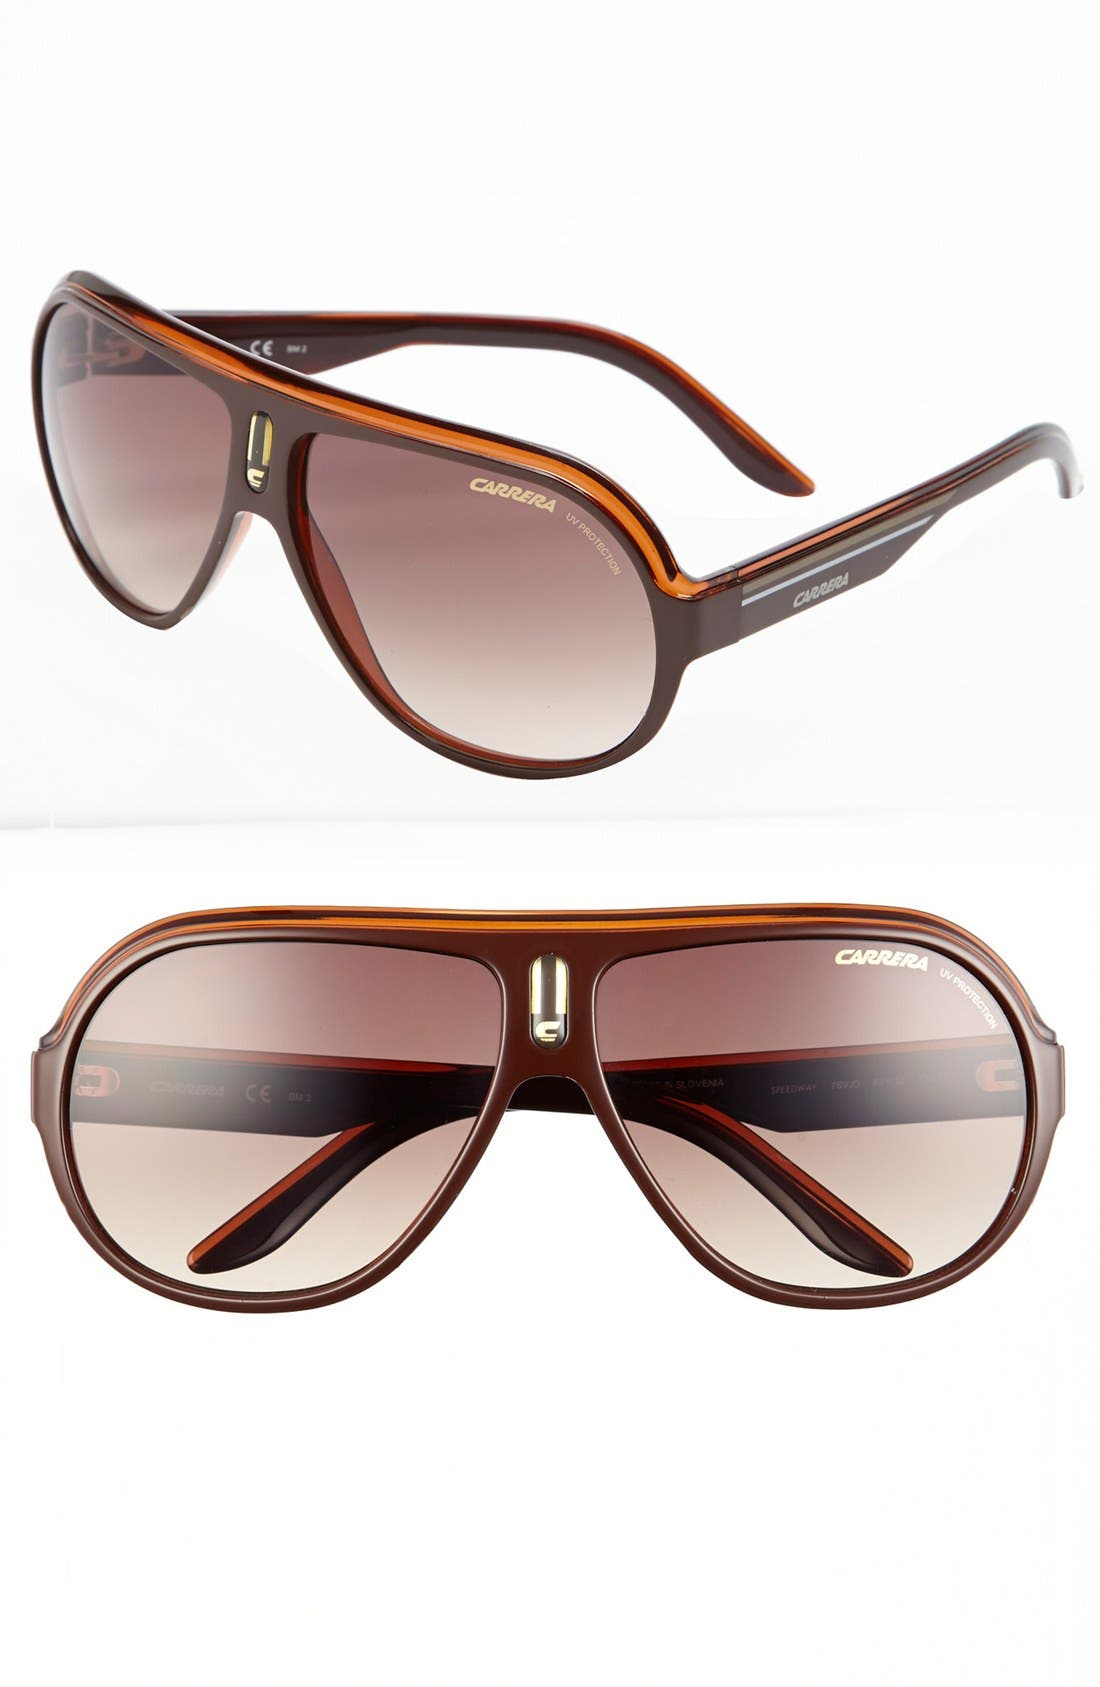 Main Image - Carrera Eyewear 'Speedway' 63mm Aviator Sunglasses